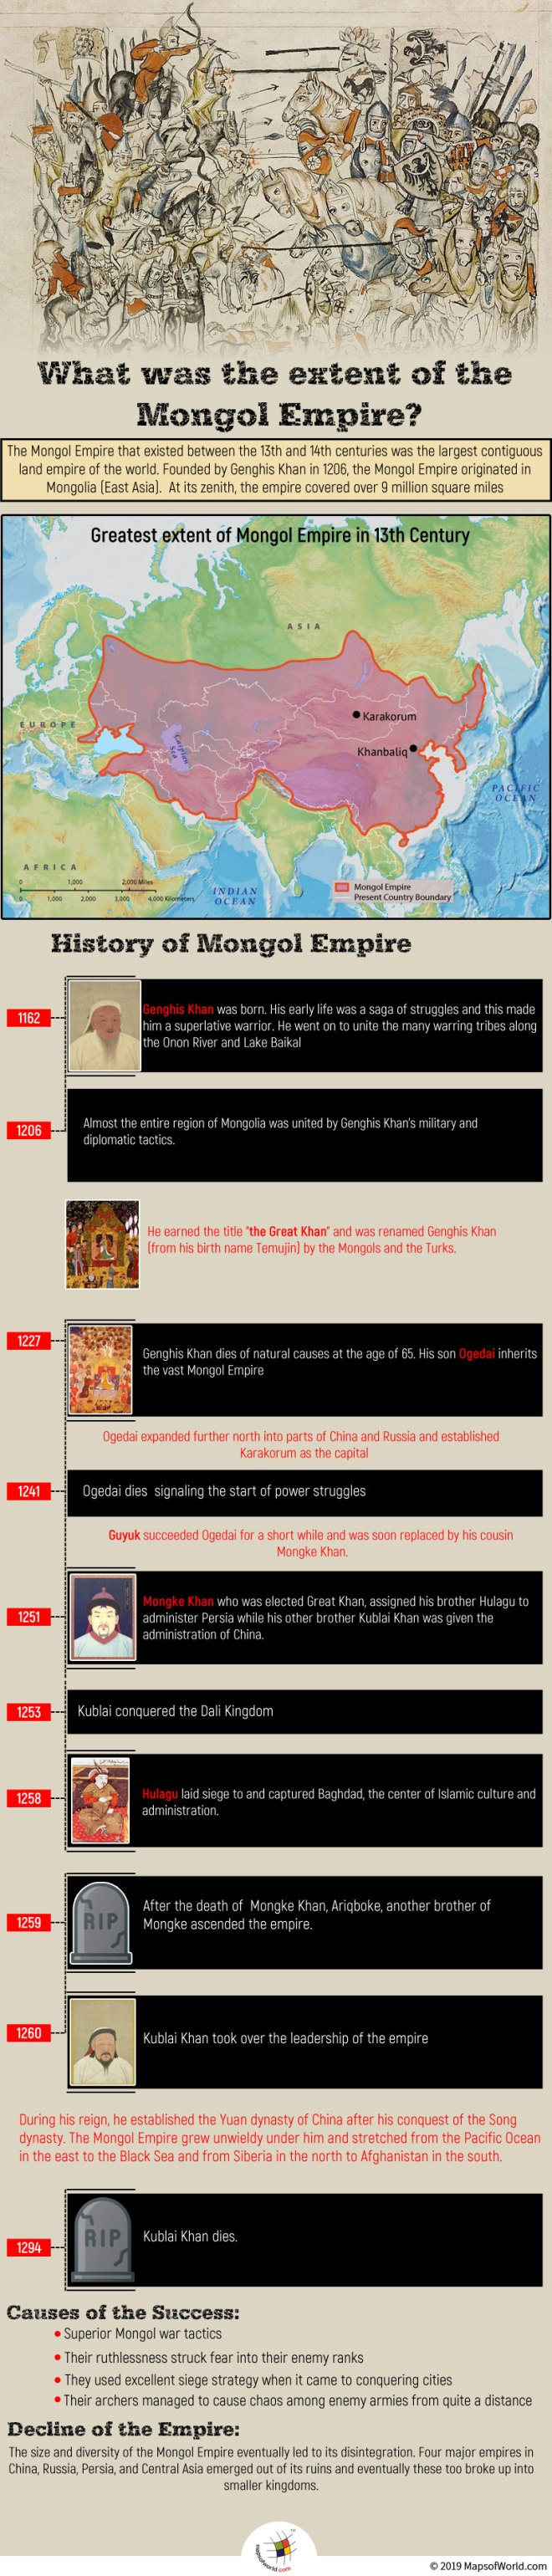 Infographic Giving Details on The History of Mongol Empire